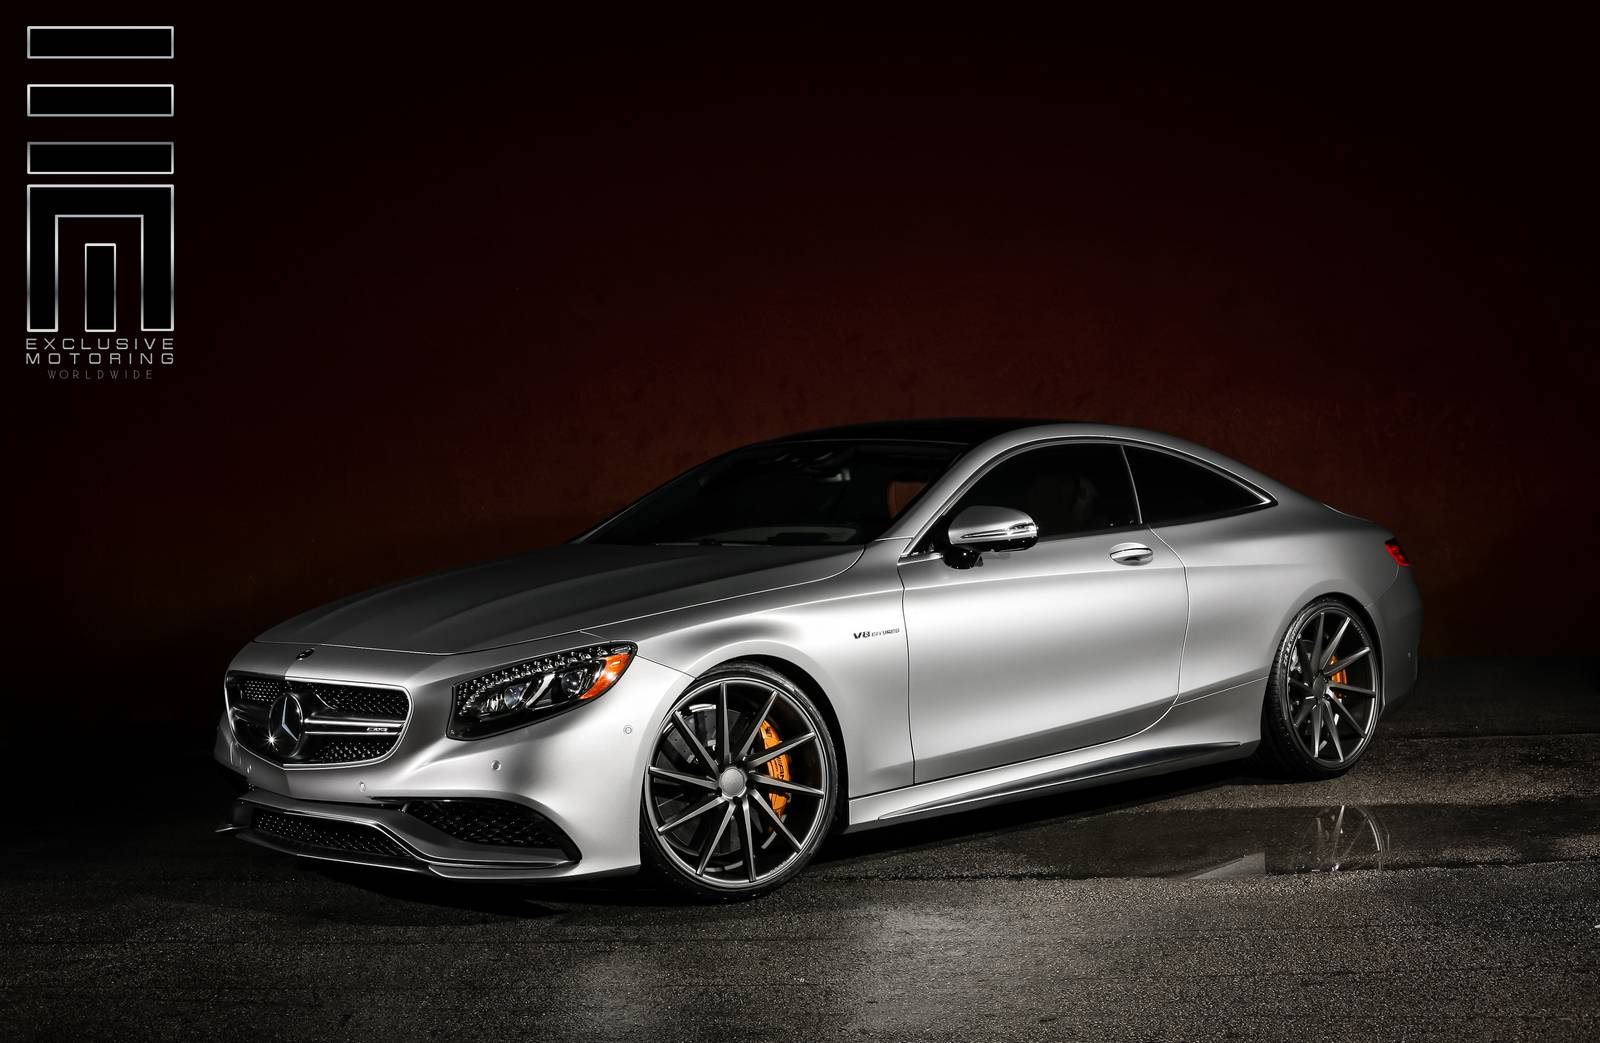 Mercedes benz s63 amg coupe stuns on vossen wheels gtspirit for Mercedes benz s63 amg coupe price